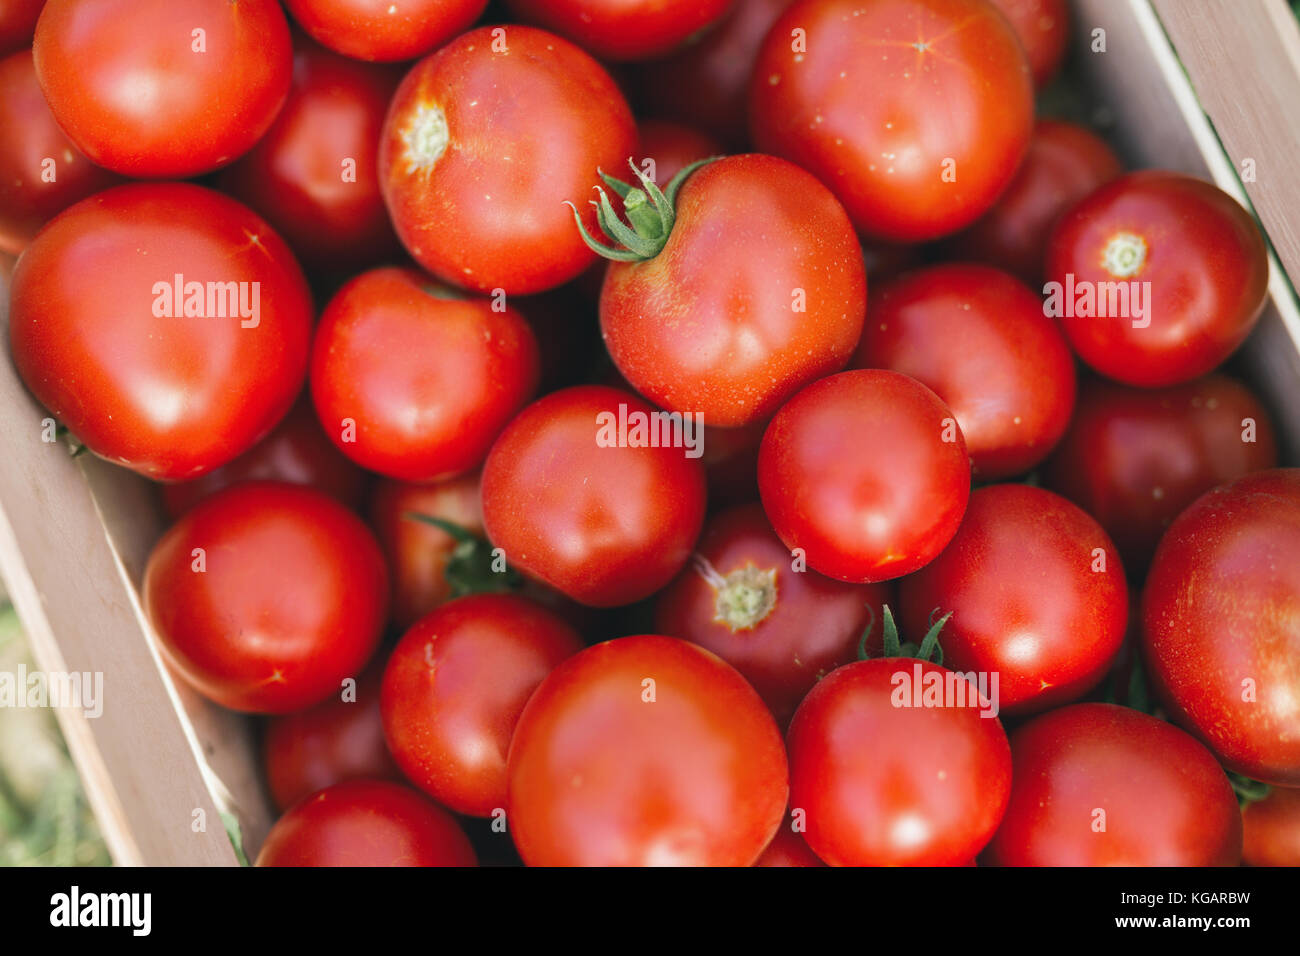 Picture of many tomatoes in wooden crate - Stock Image